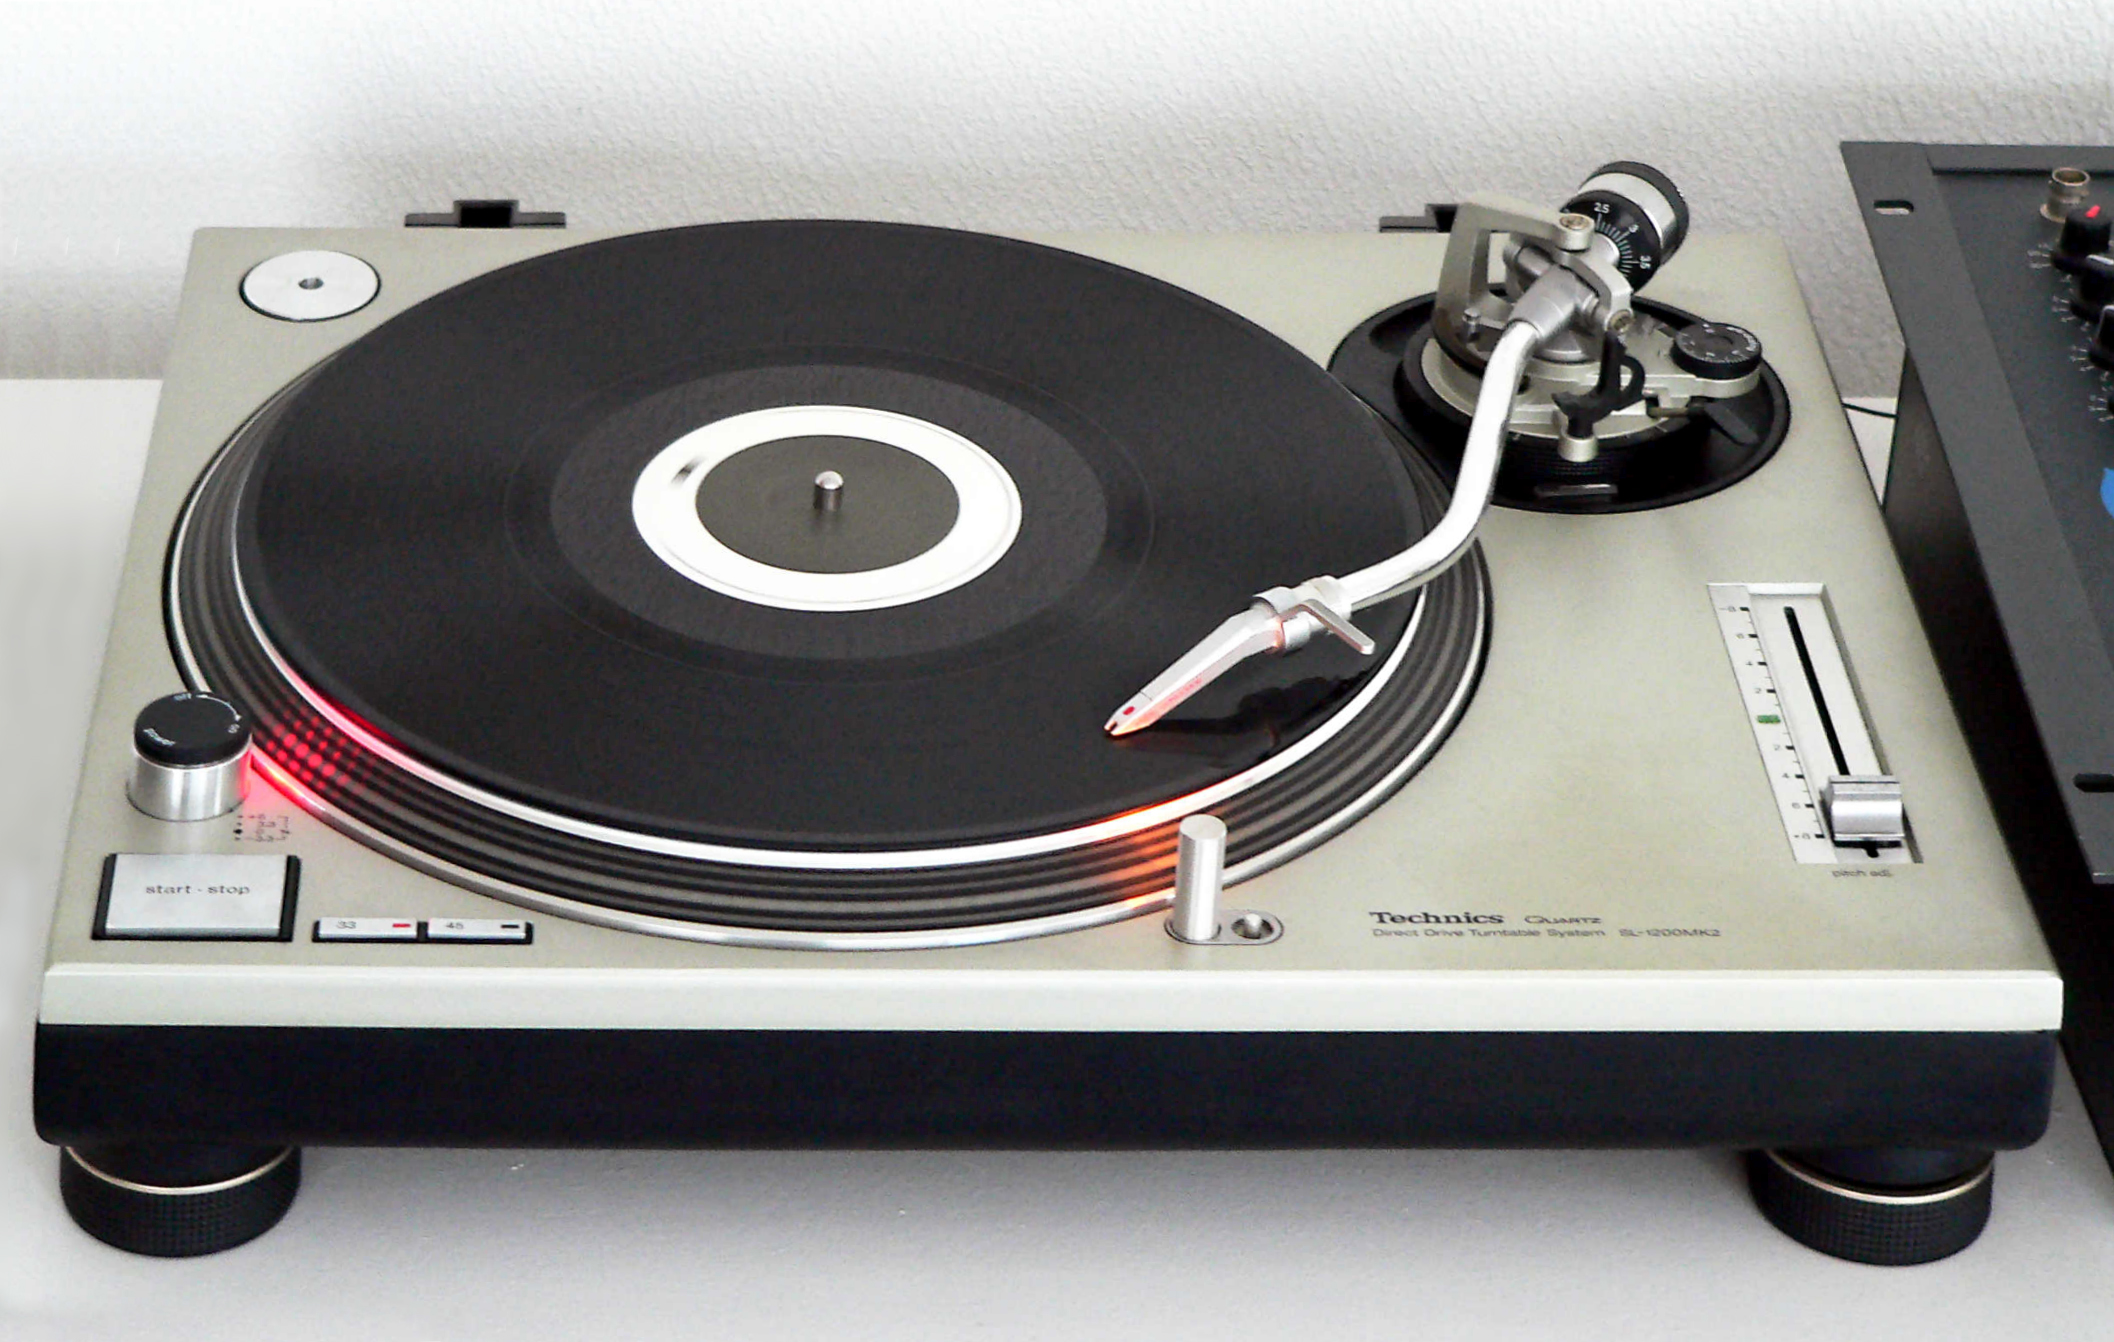 Technics sl-1210 m5g grandmaster 30th anniversary edition.